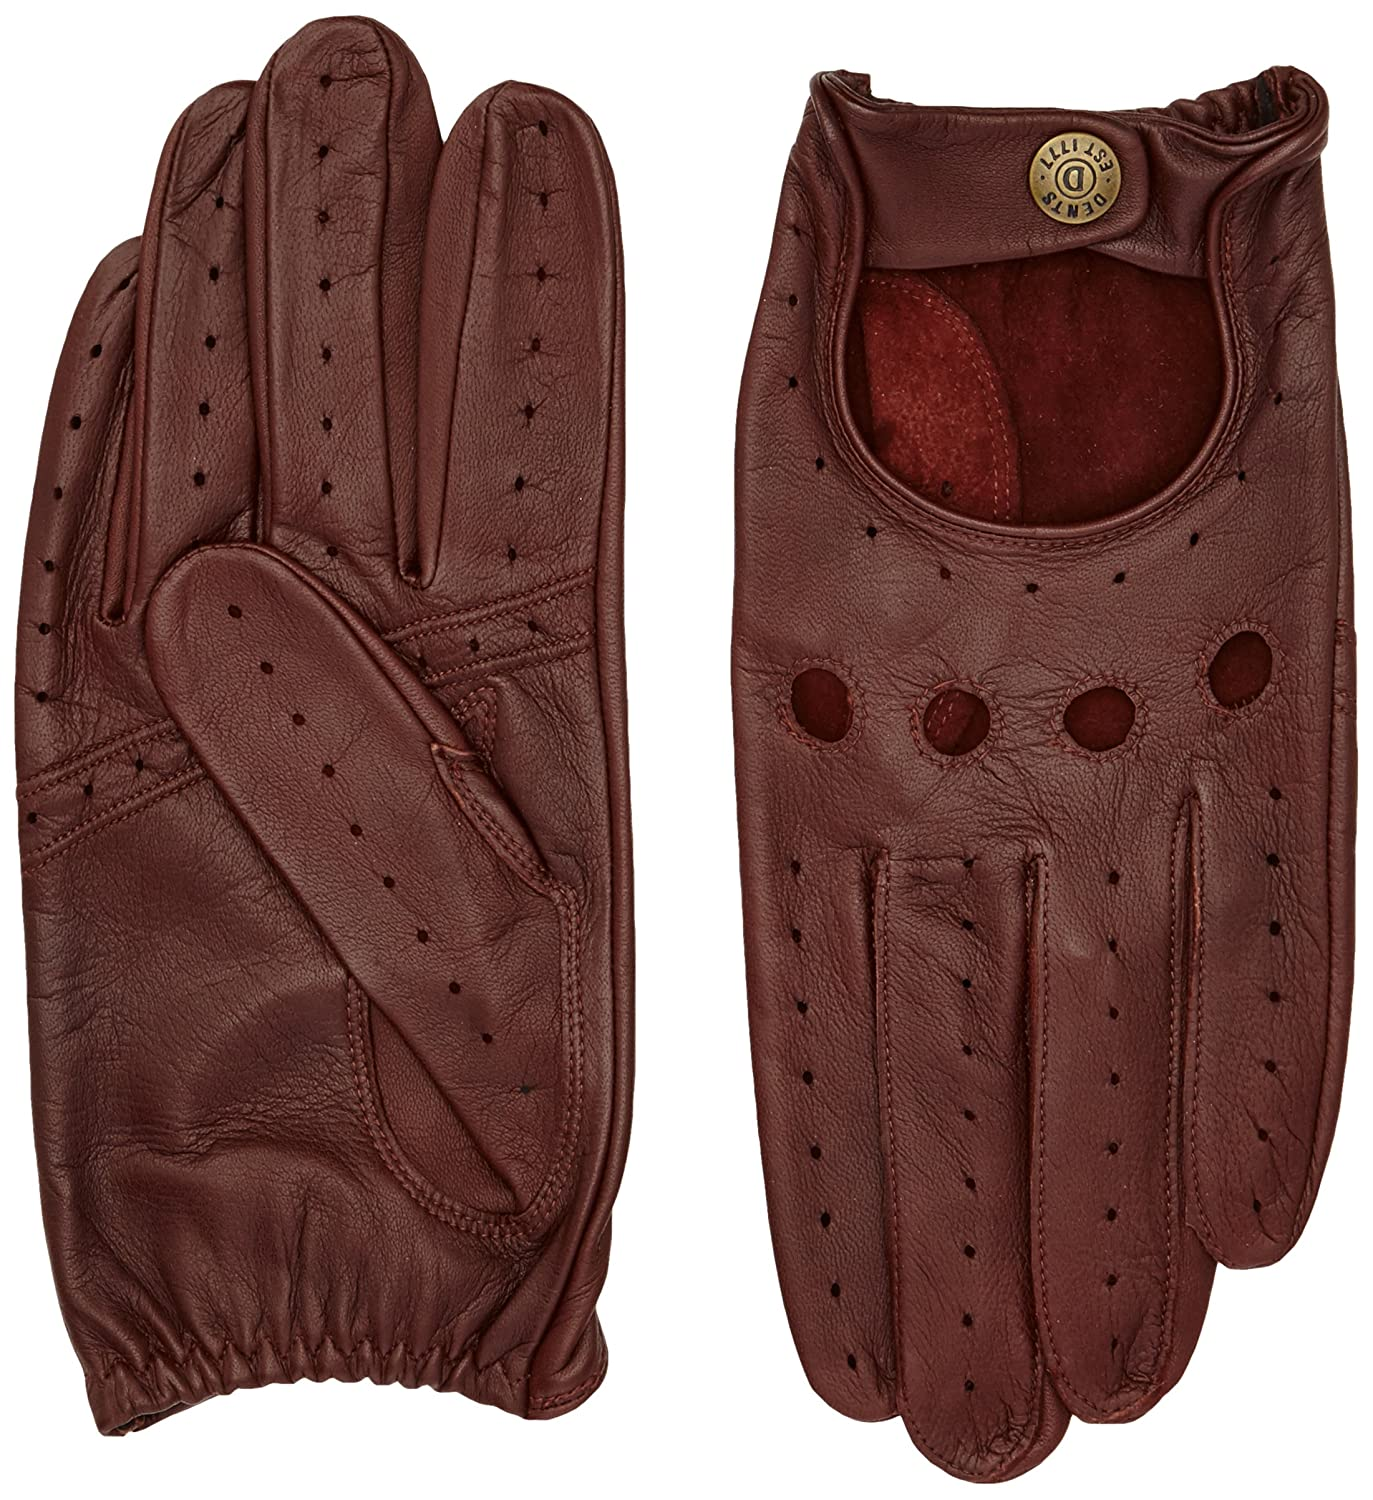 DENTS Leather Driving Gloves 5-1011 - English Tan - Small